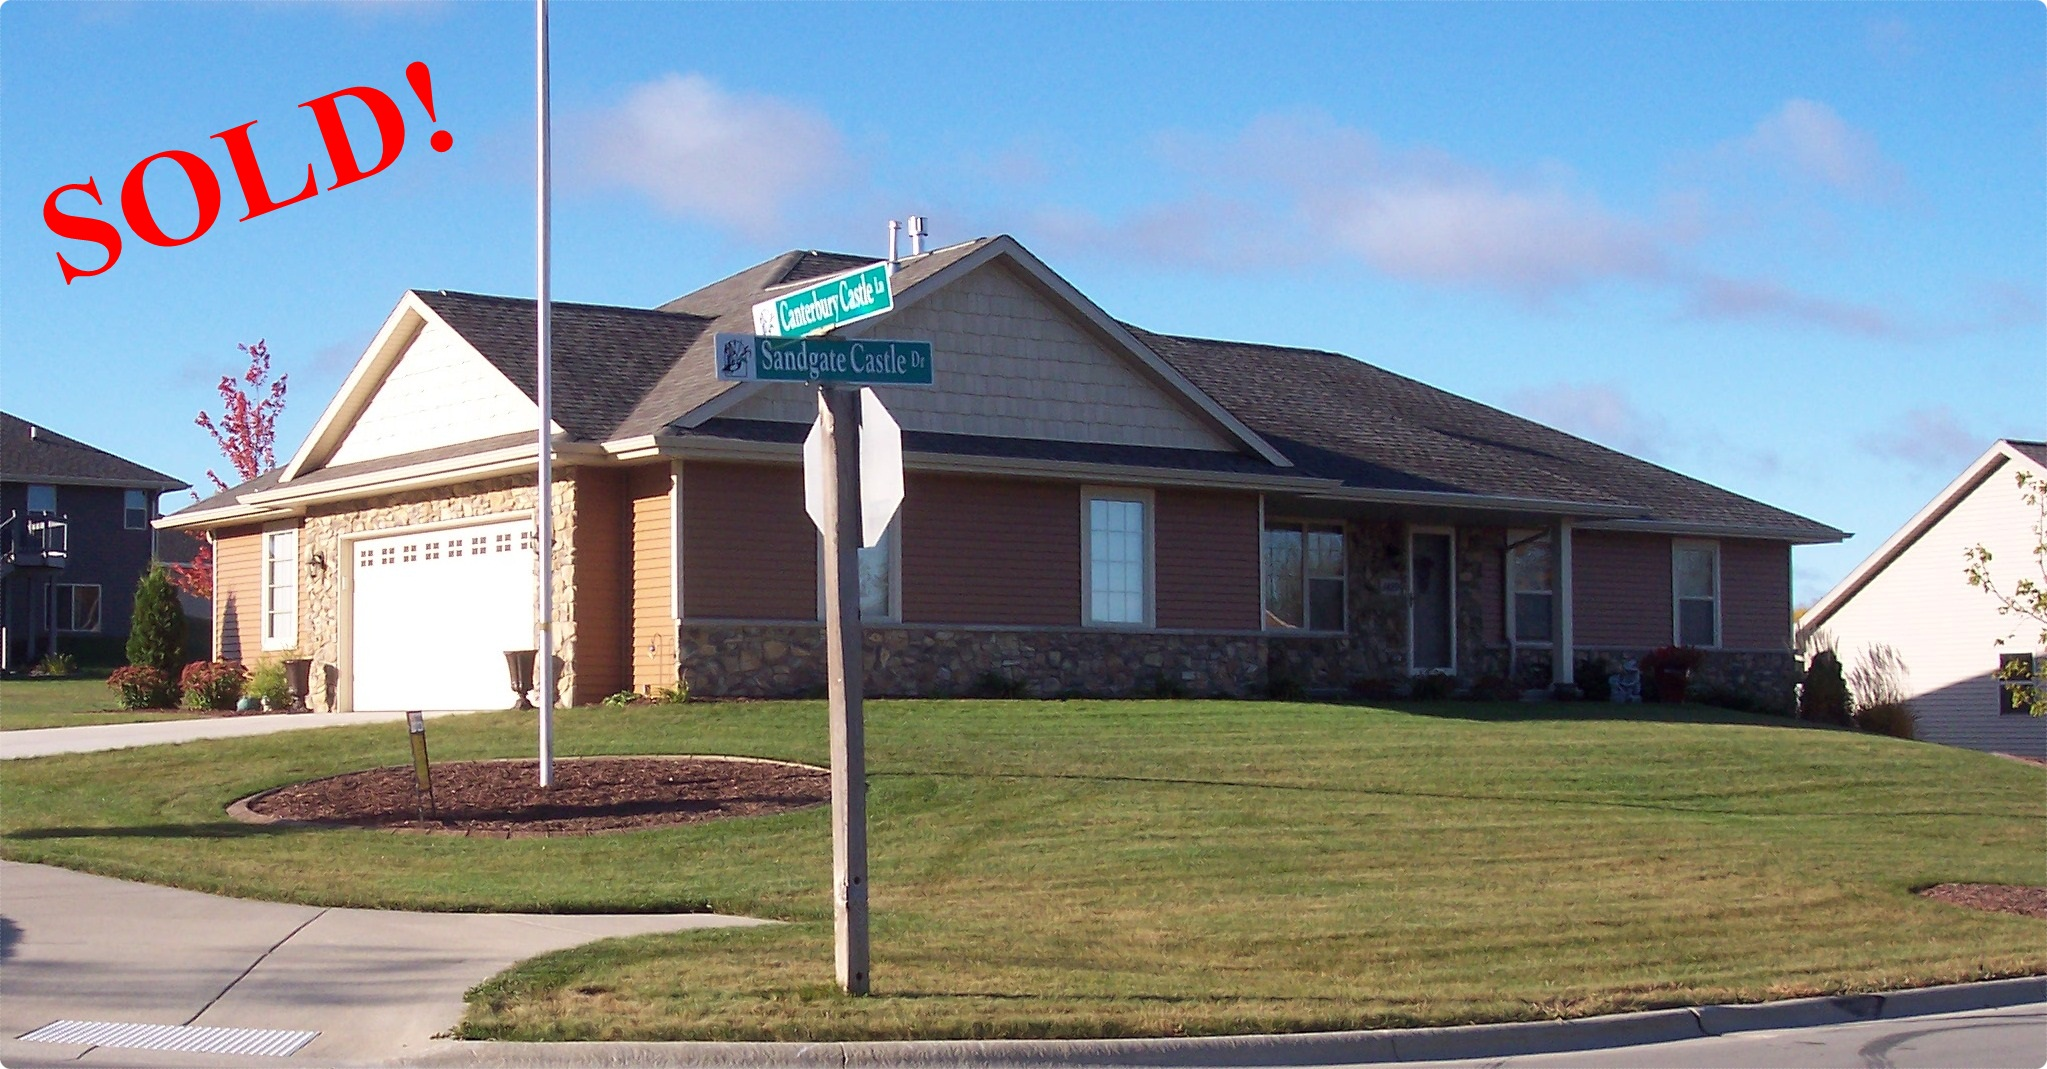 homes Bonduel WI, property for sale Bonduel WI, sell my house, estate agent, country pride realty, wisconsin, property search, commercial real estate for sale,